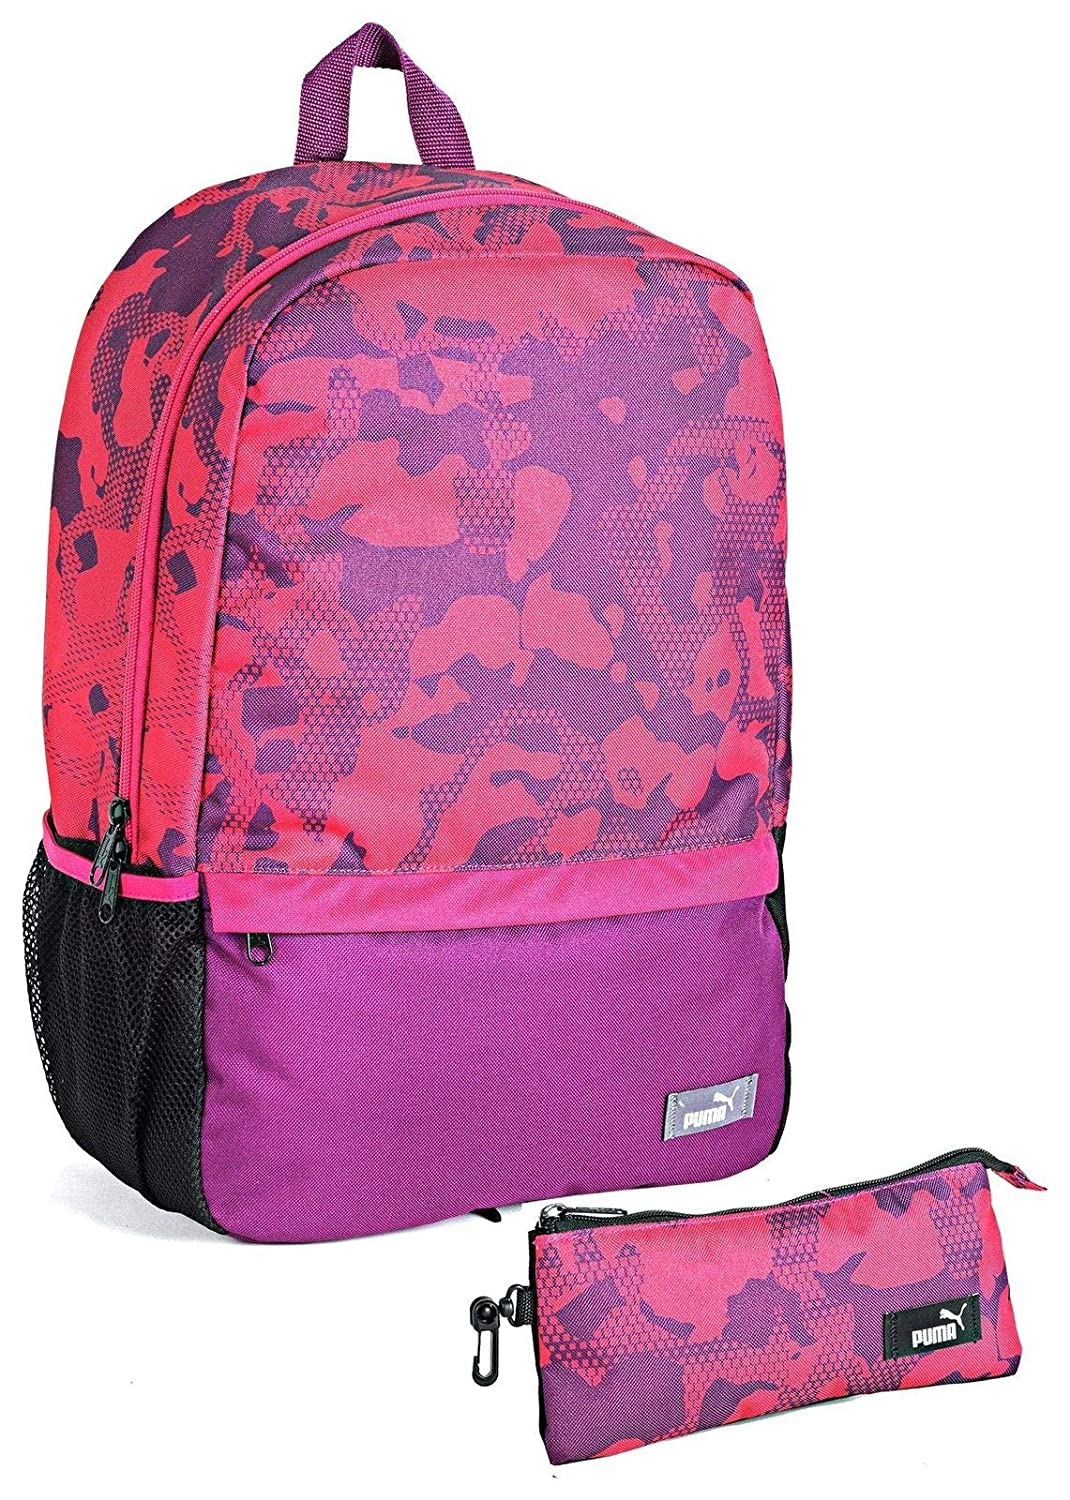 PUMA Dark Purple Love Potion Backpack   Pencil CASE Set  Amazon.co.uk   Luggage 5b9957f5a3316